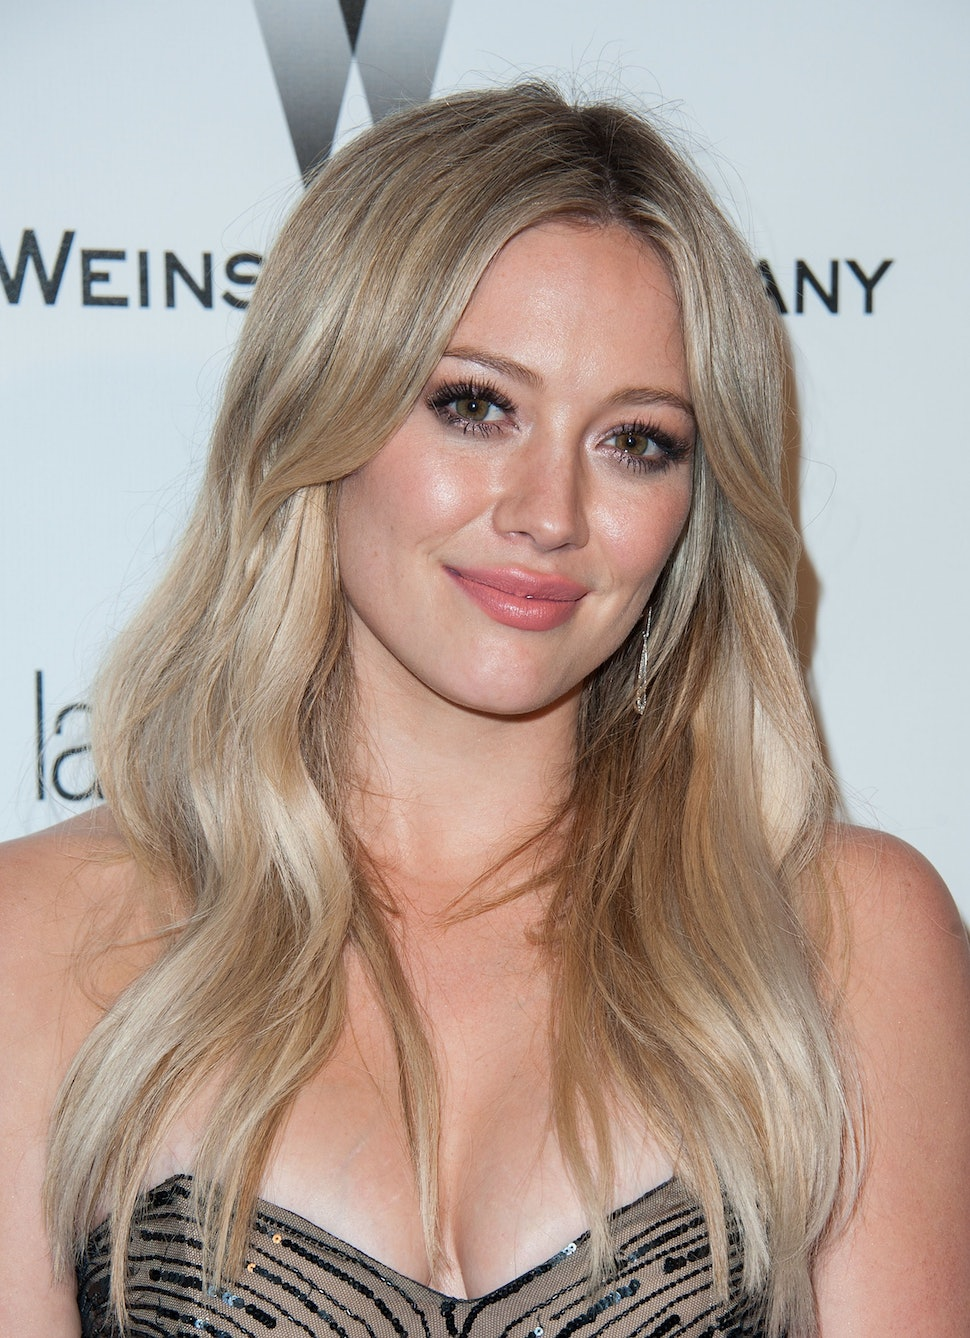 Hilary Duff S Sparks Video Singer Rocks Blue Hair In: Hilary Duff Dyed Her Hair Mermaid Blue For An Ombre Look